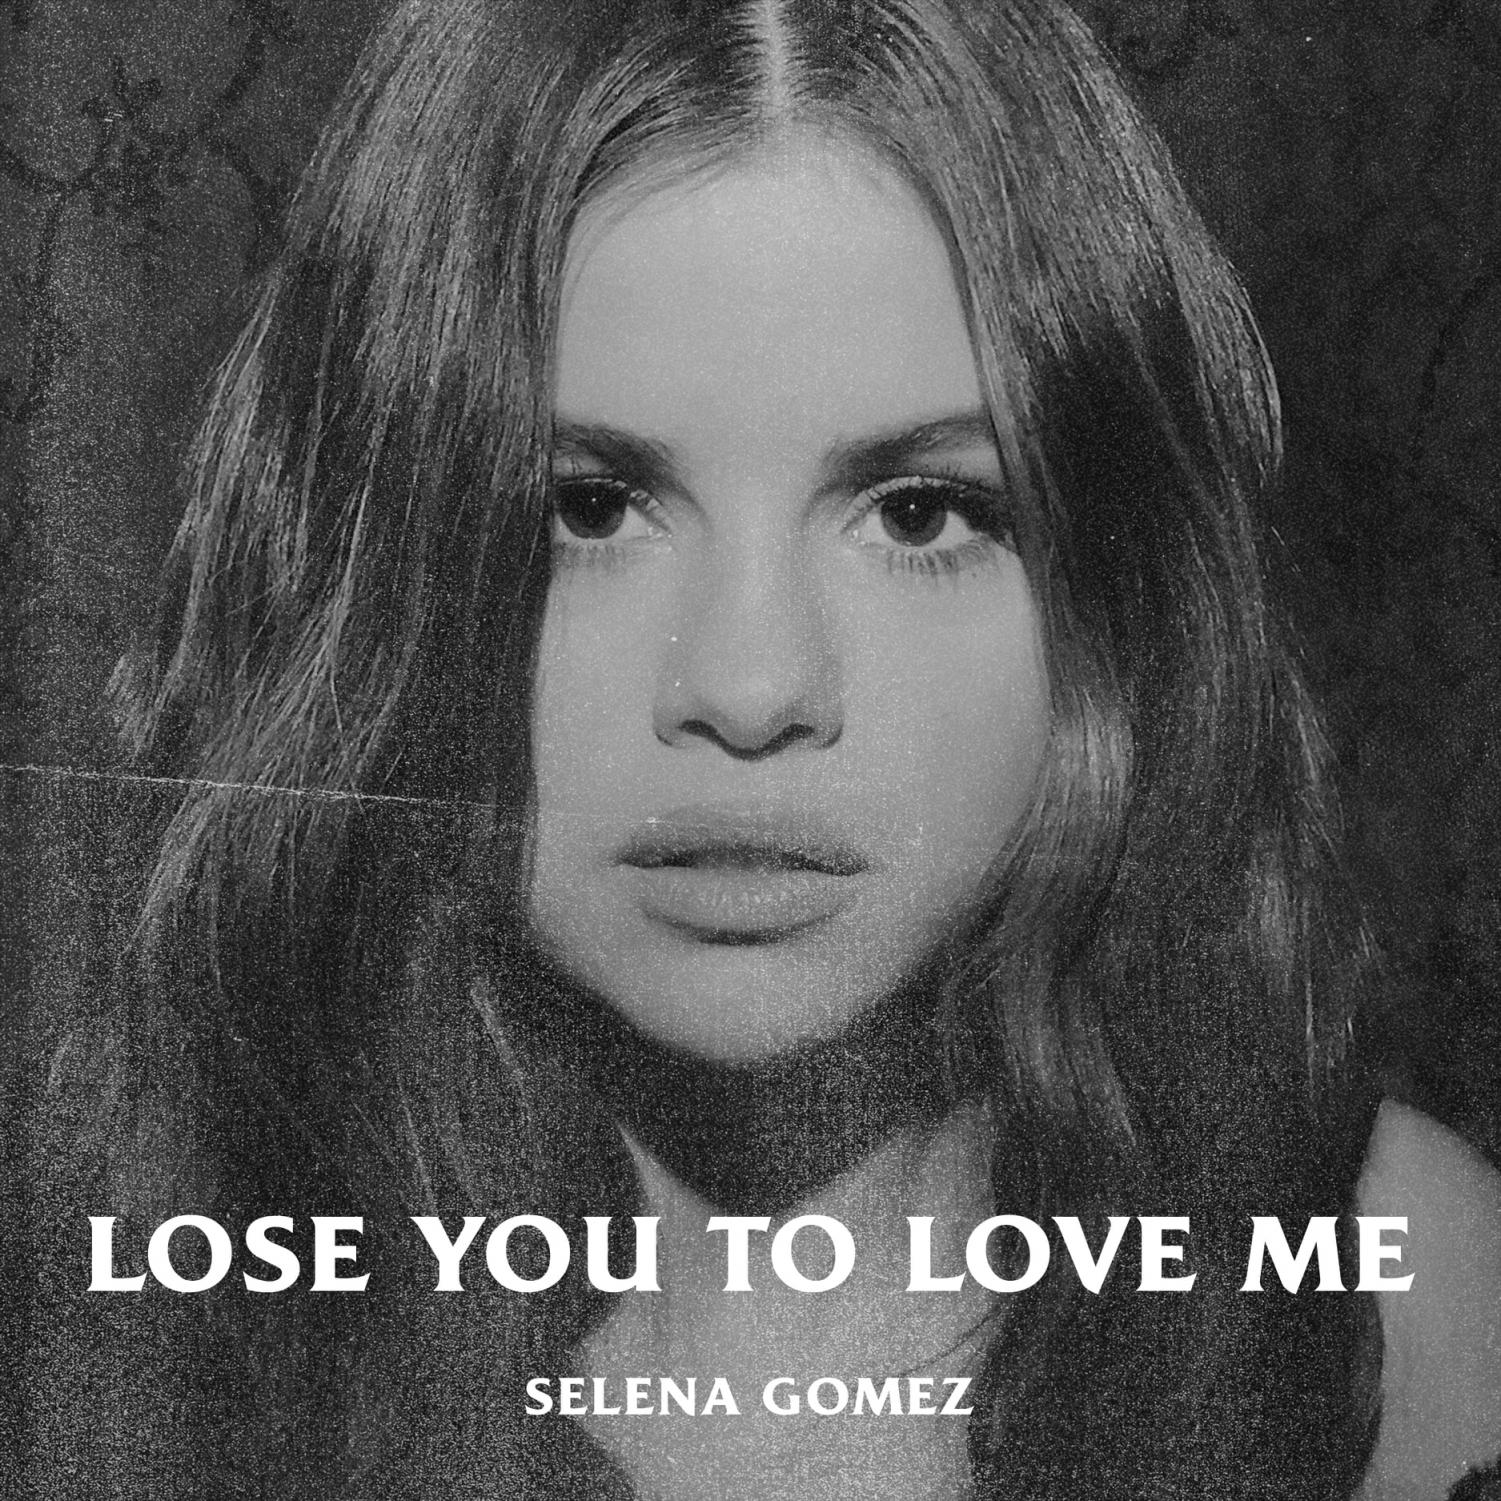 Courtesy of Selena Gomez's Official Facebook Page